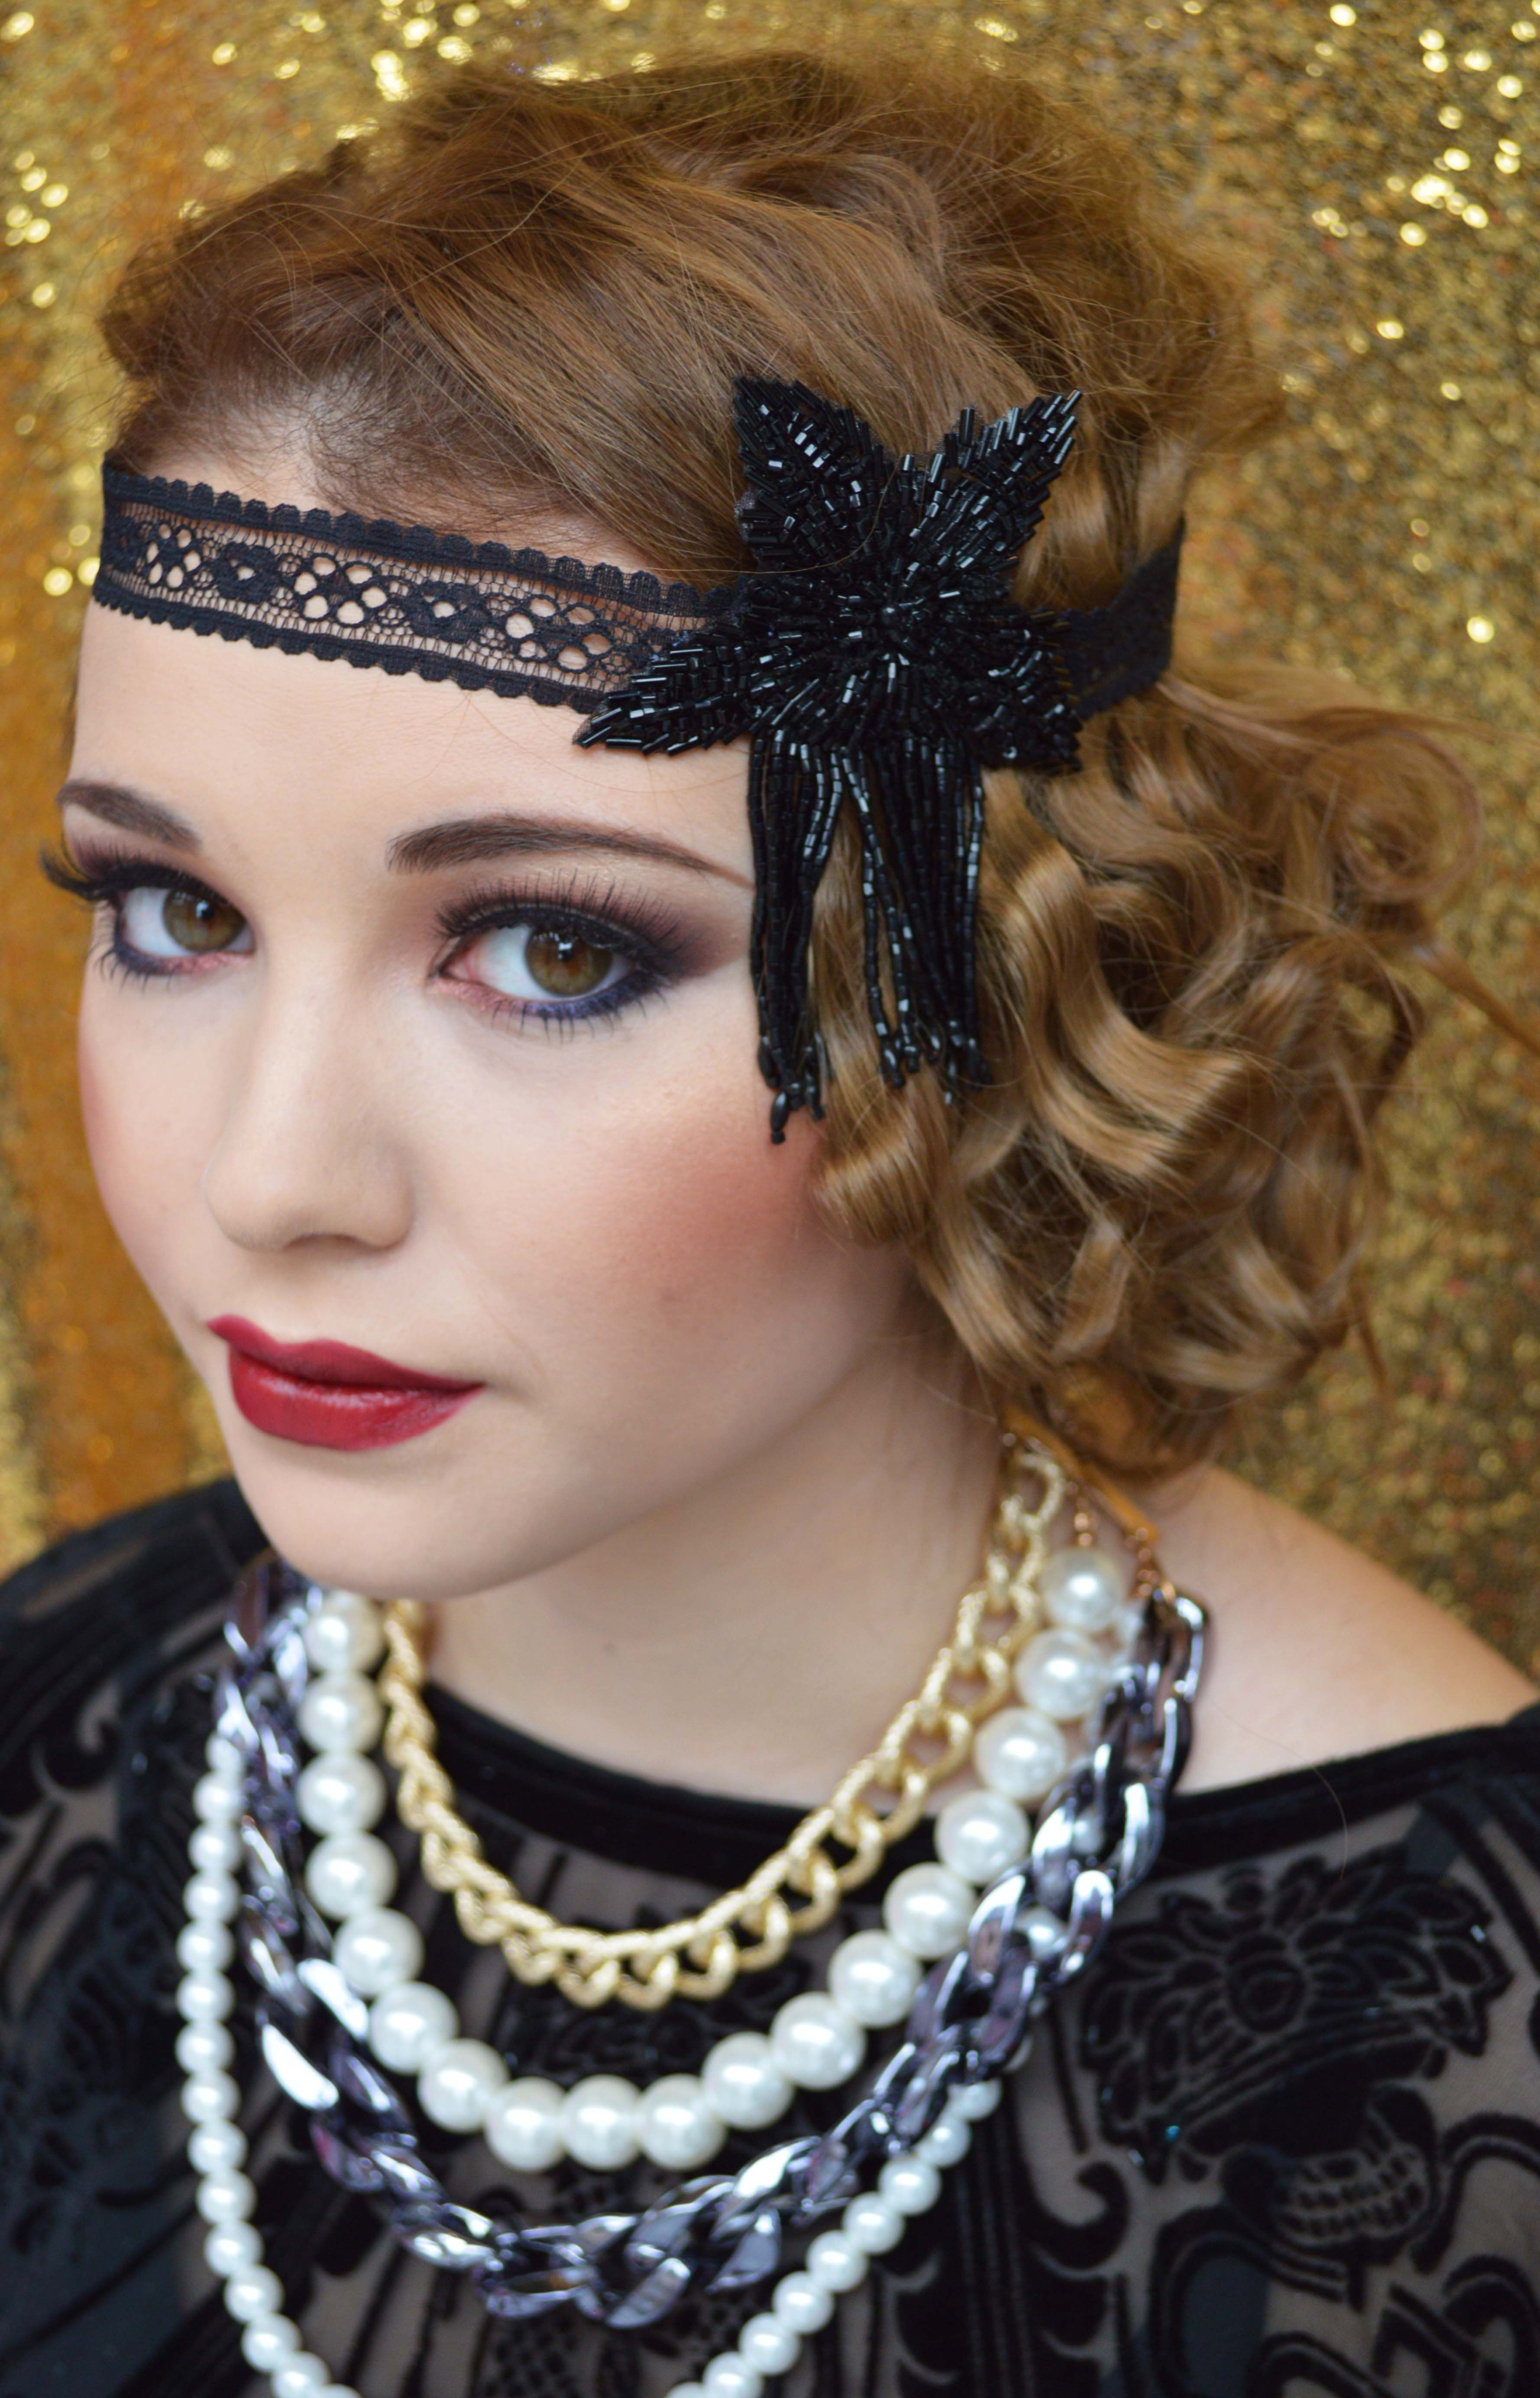 the great gatsby inspired makeup and hair by peaches xx